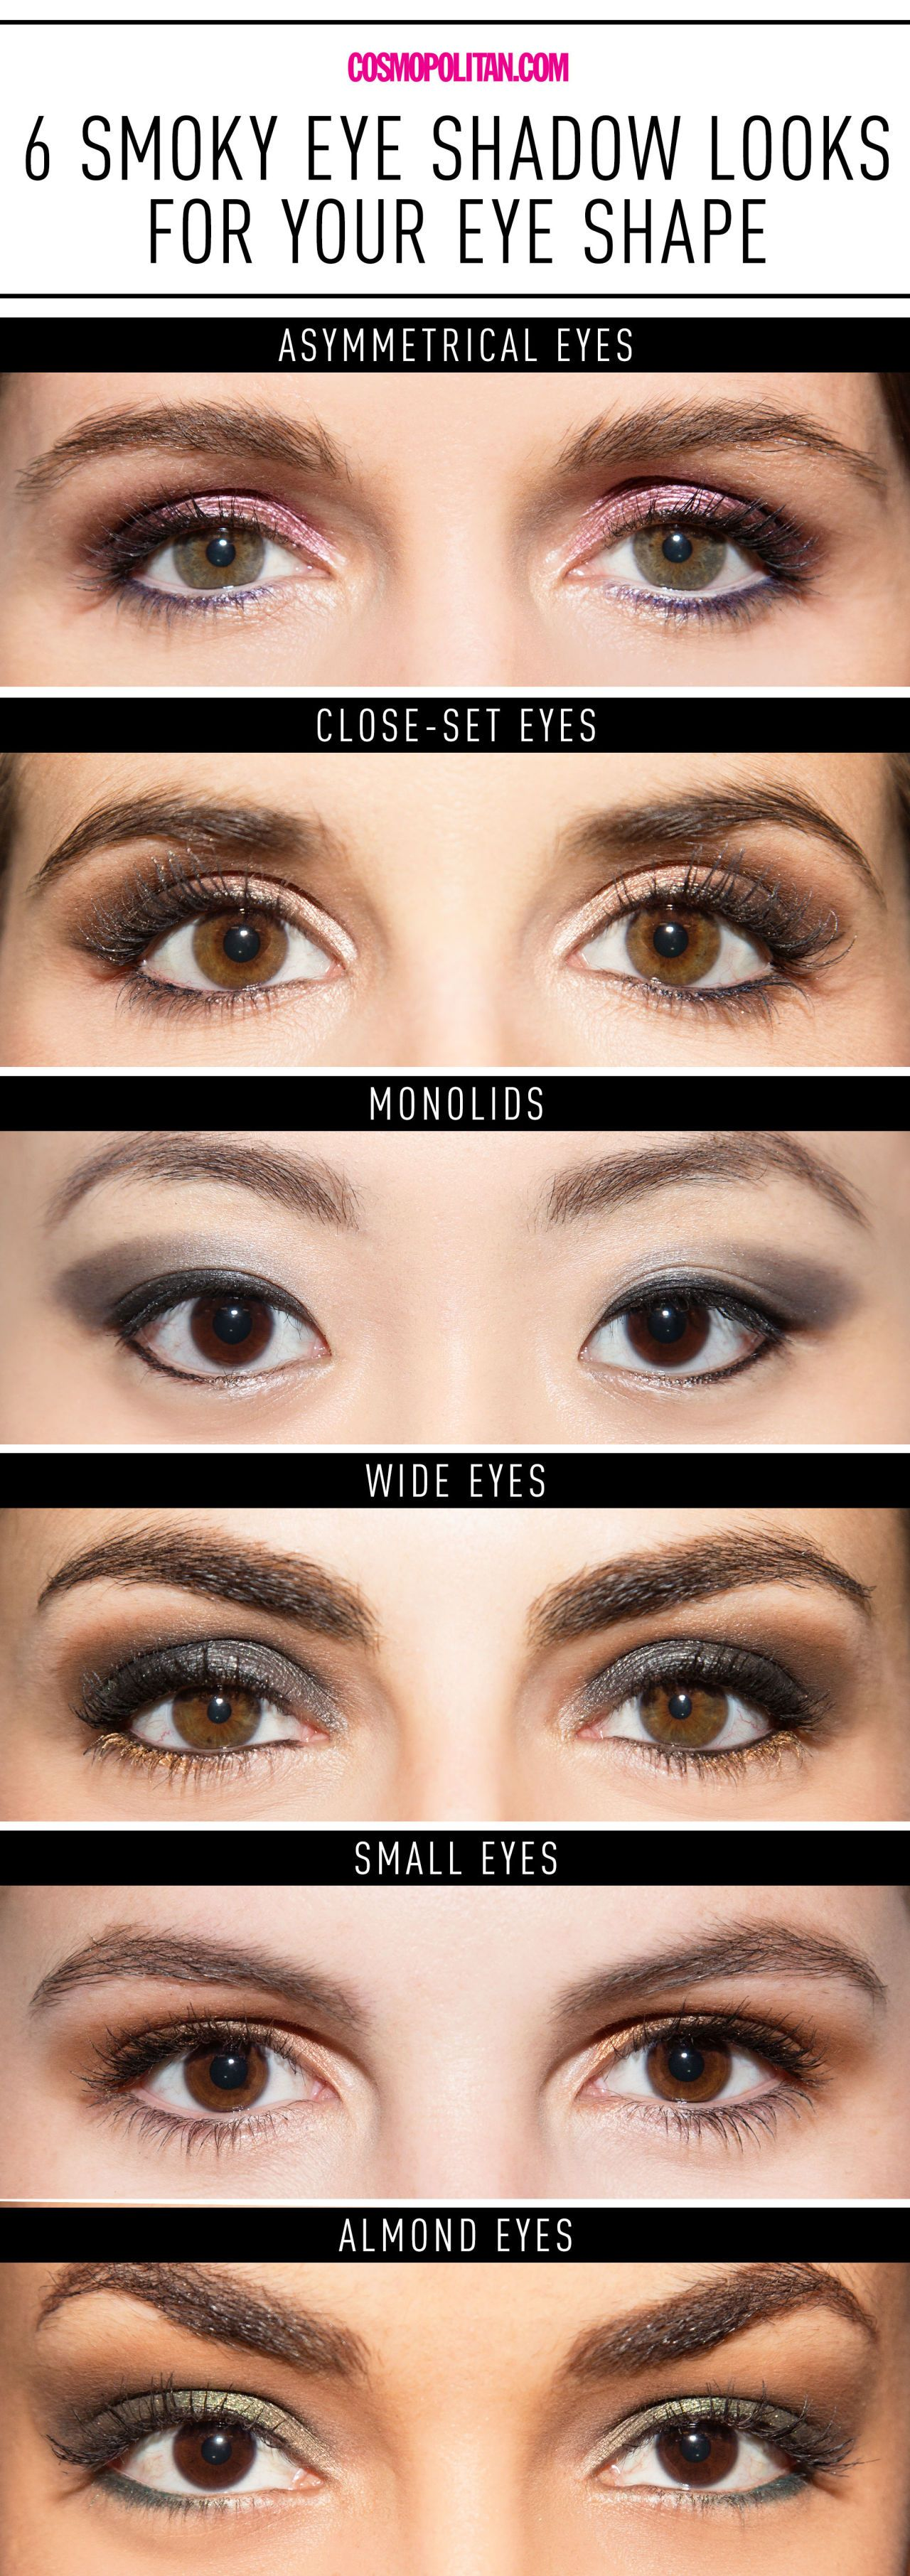 6 Perfect Smoky Eye Looks For Your Eye Shape Cosmo Beauty